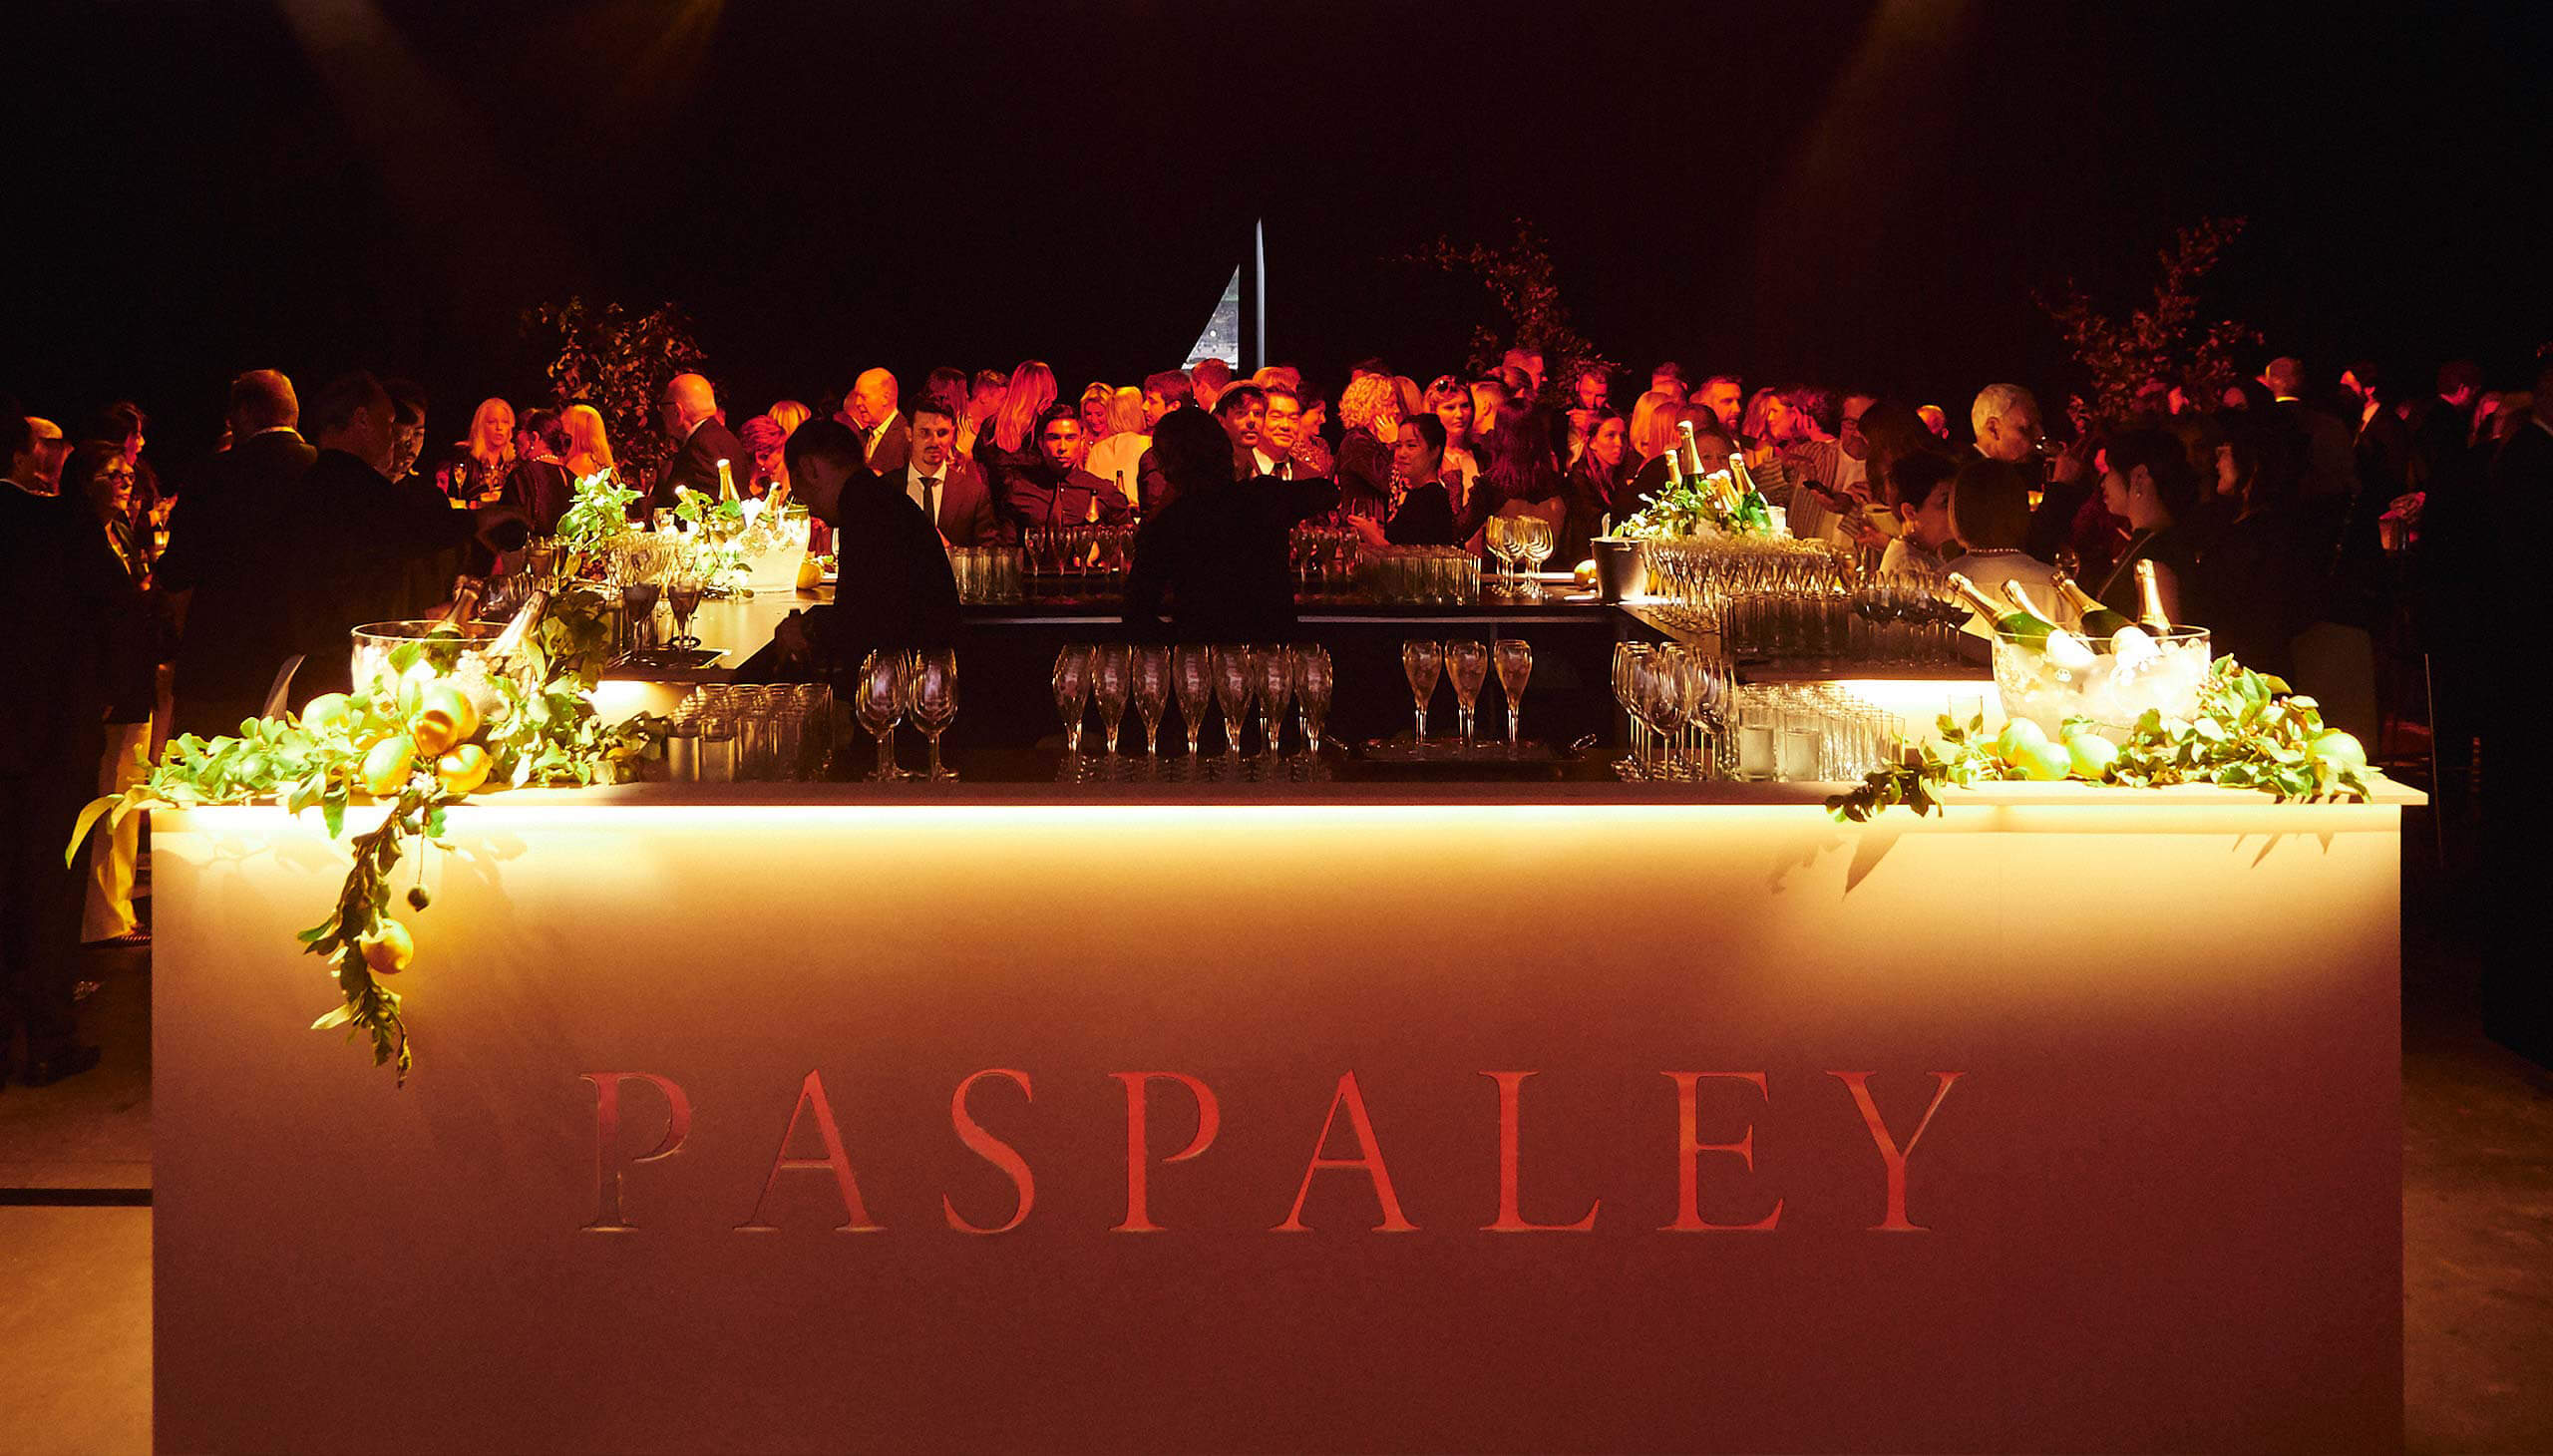 Decorated bar at Paspaley event